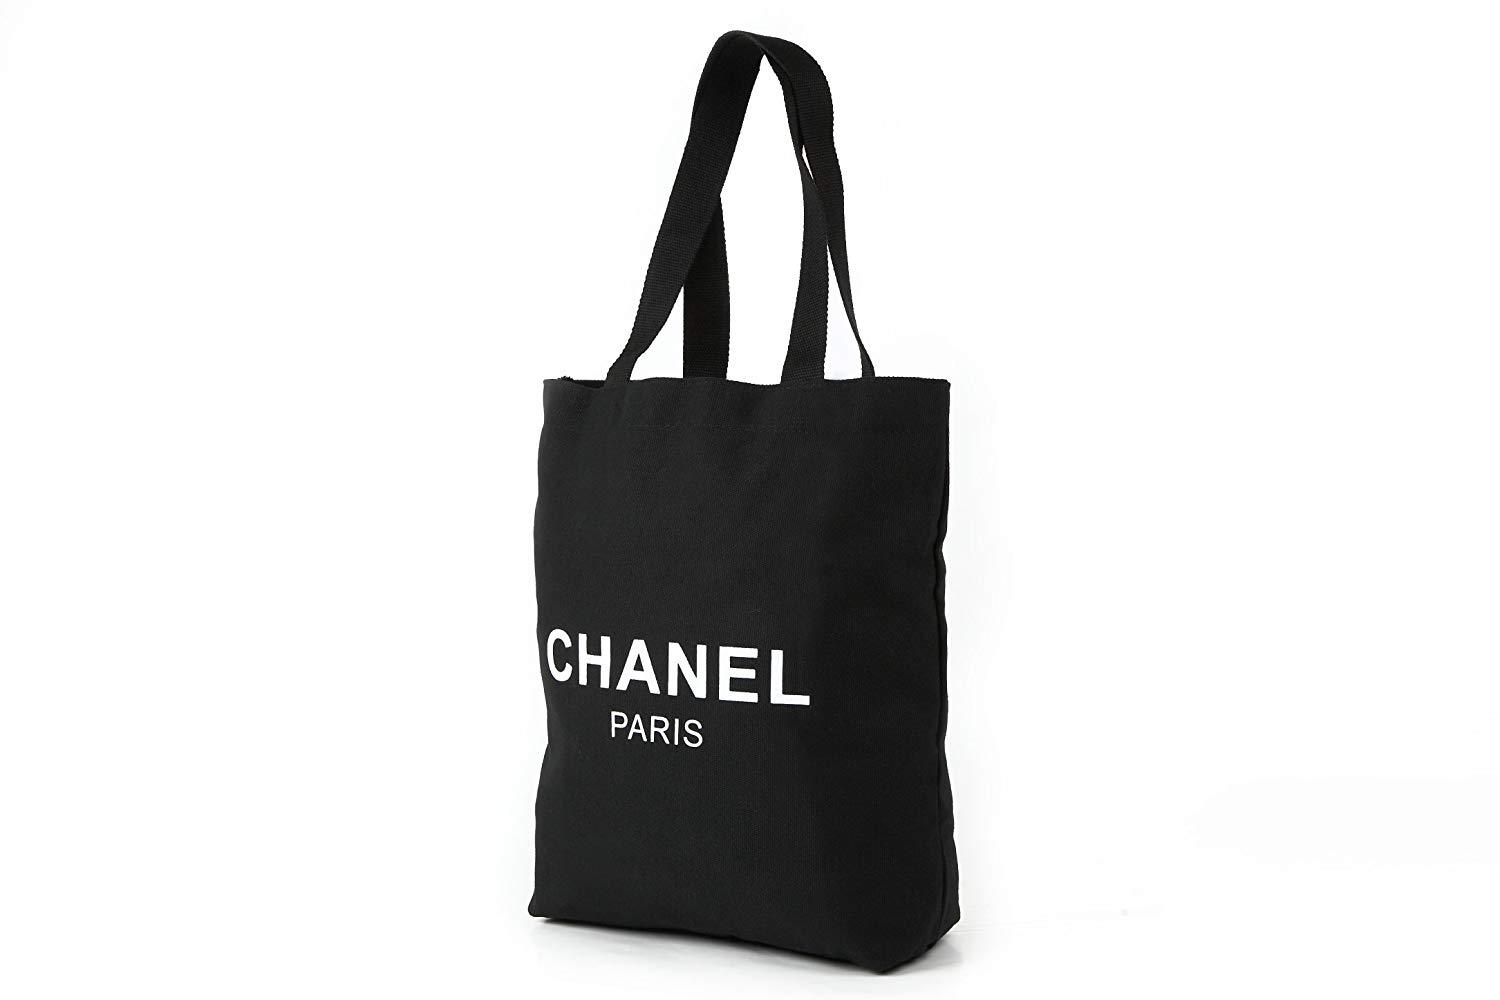 b58525a41bf2 ... Chanel Black Canvas Shopping Tote Bag White Logo Makeup Organiser VIP  GIFT - PARTYMOOD ...